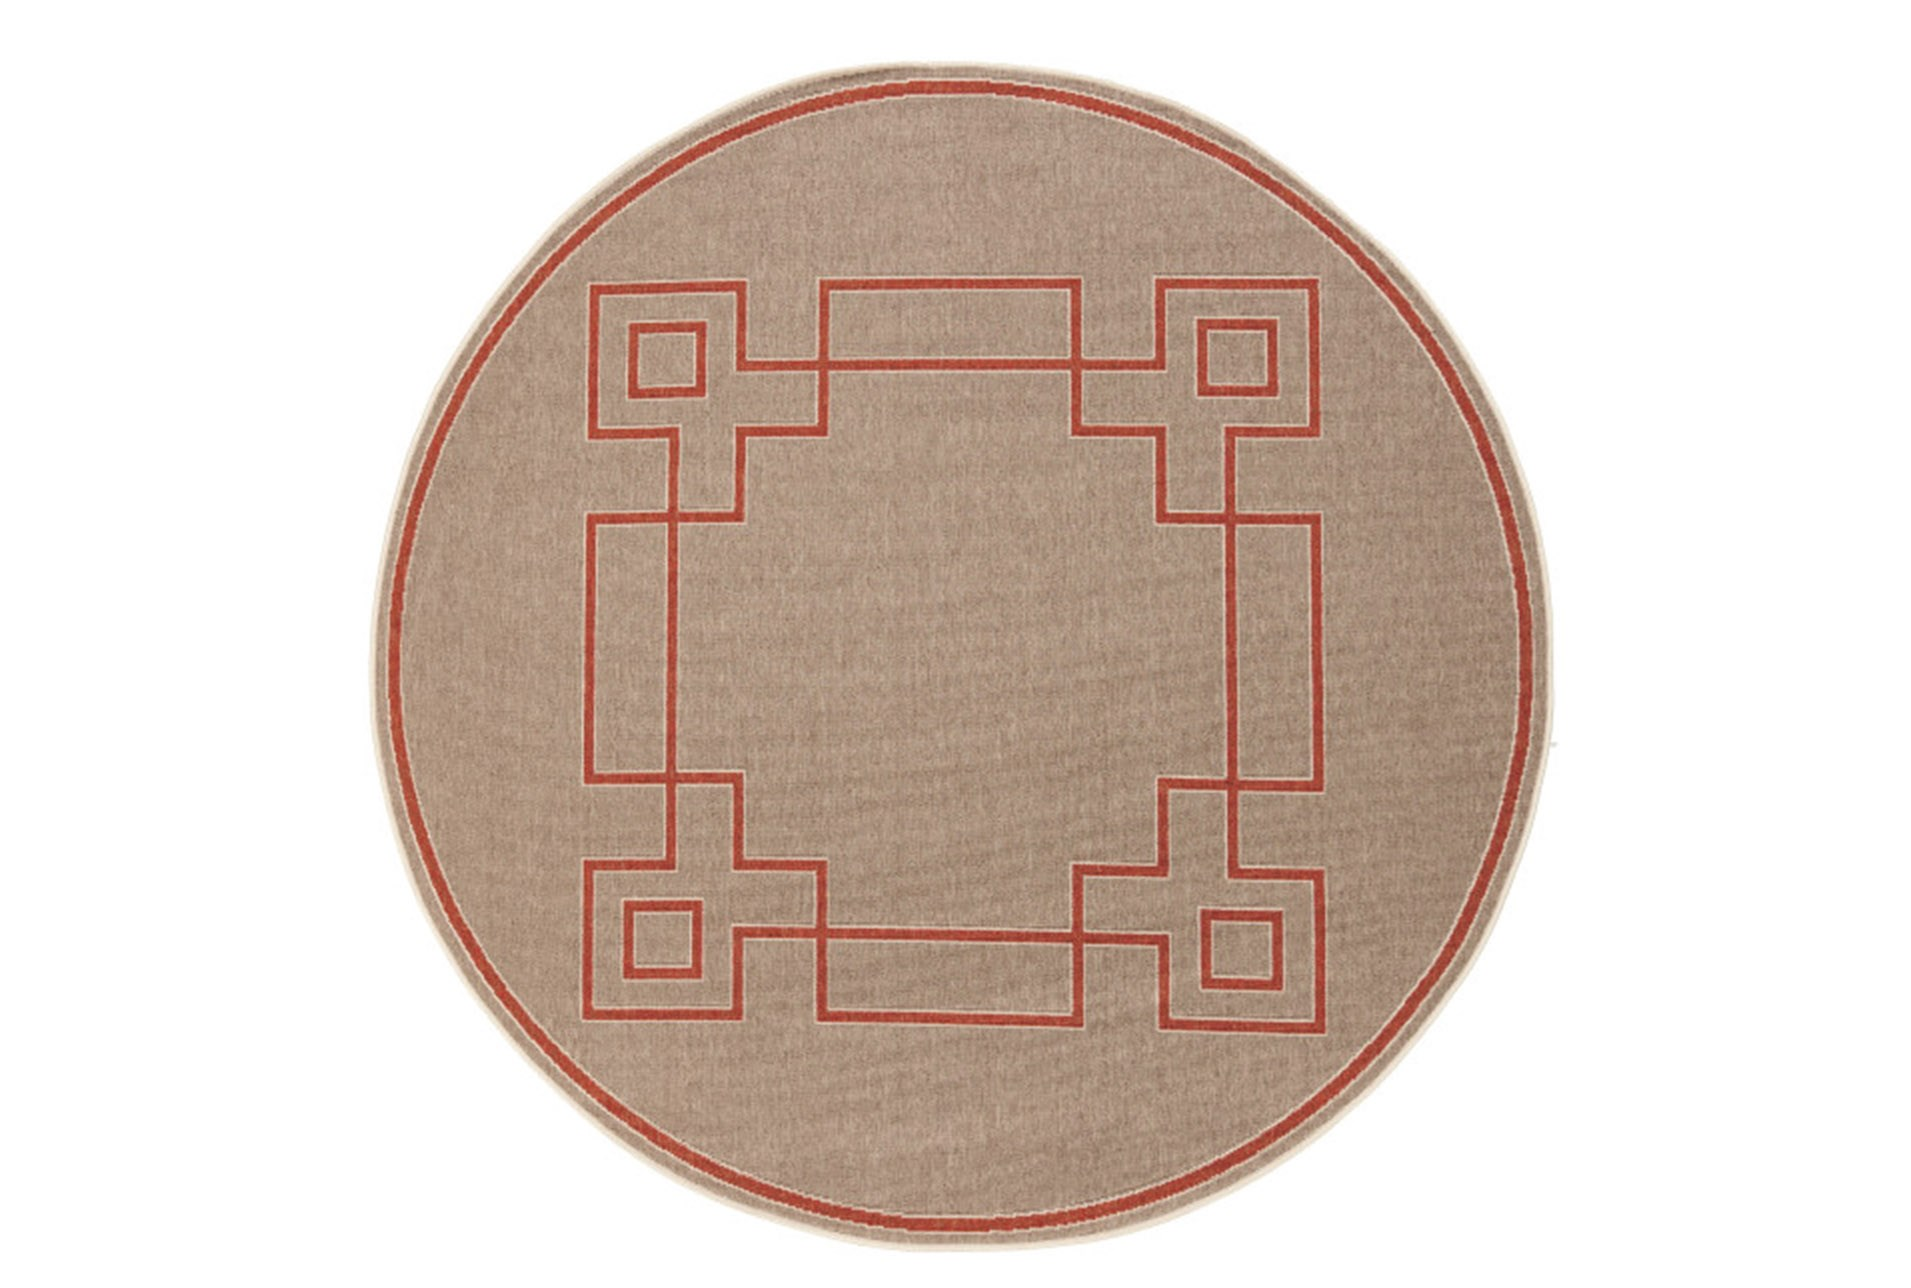 63 Inch Round Outdoor Rug Greek Key Border Natural Poppy Qty 1 Has Been Successfully Added To Your Cart